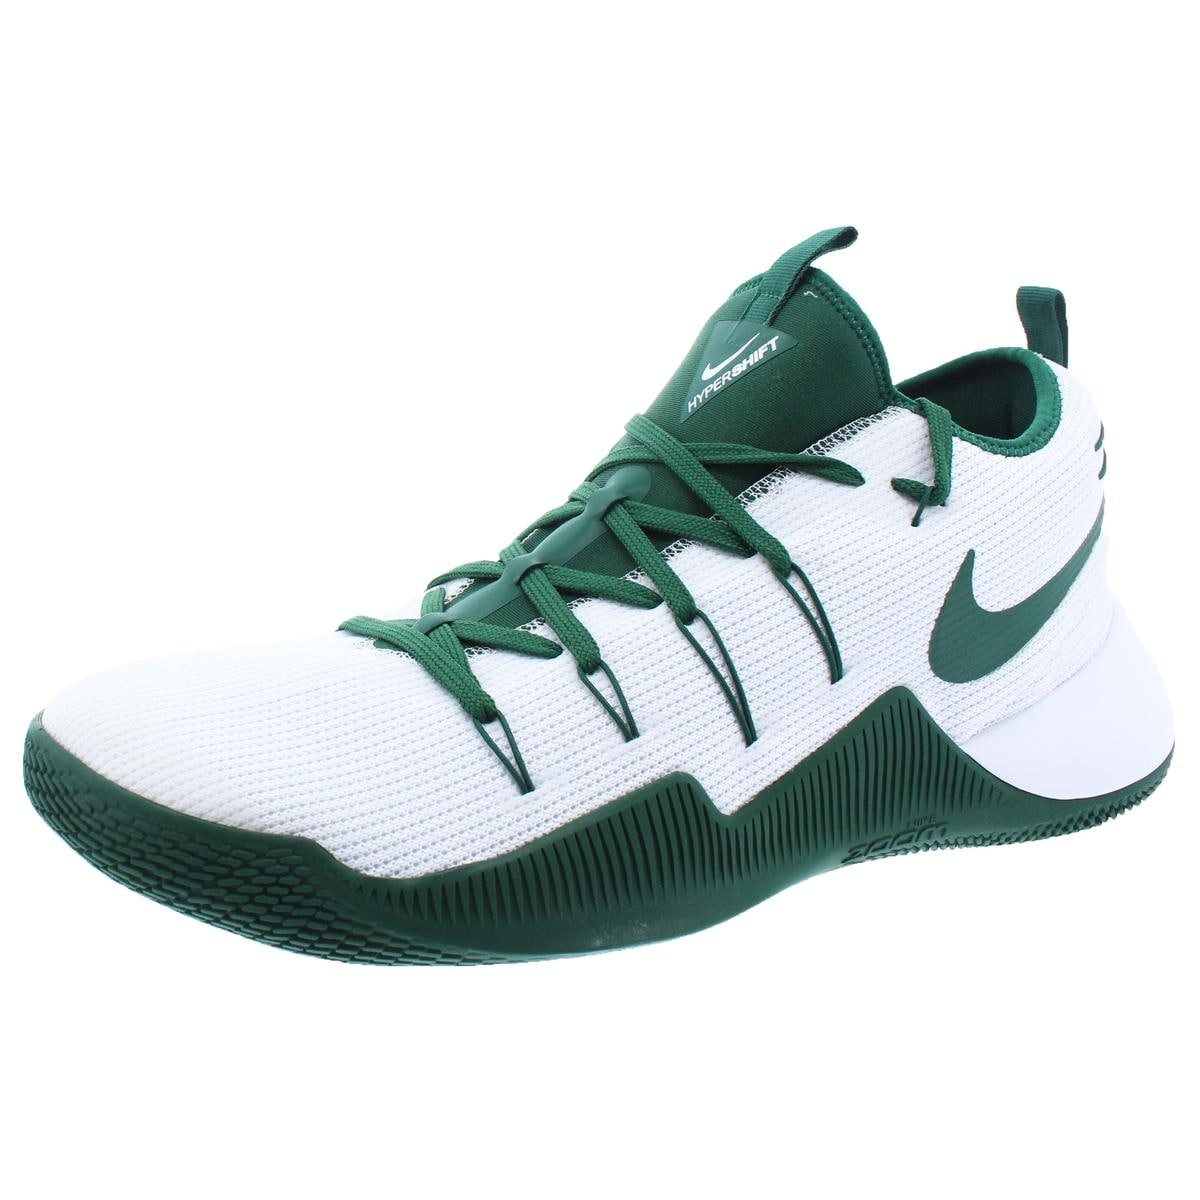 1bce86da5d5 ... discount code for shop nike mens hypershift tb promo basketball shoes  mid top nike zoom free